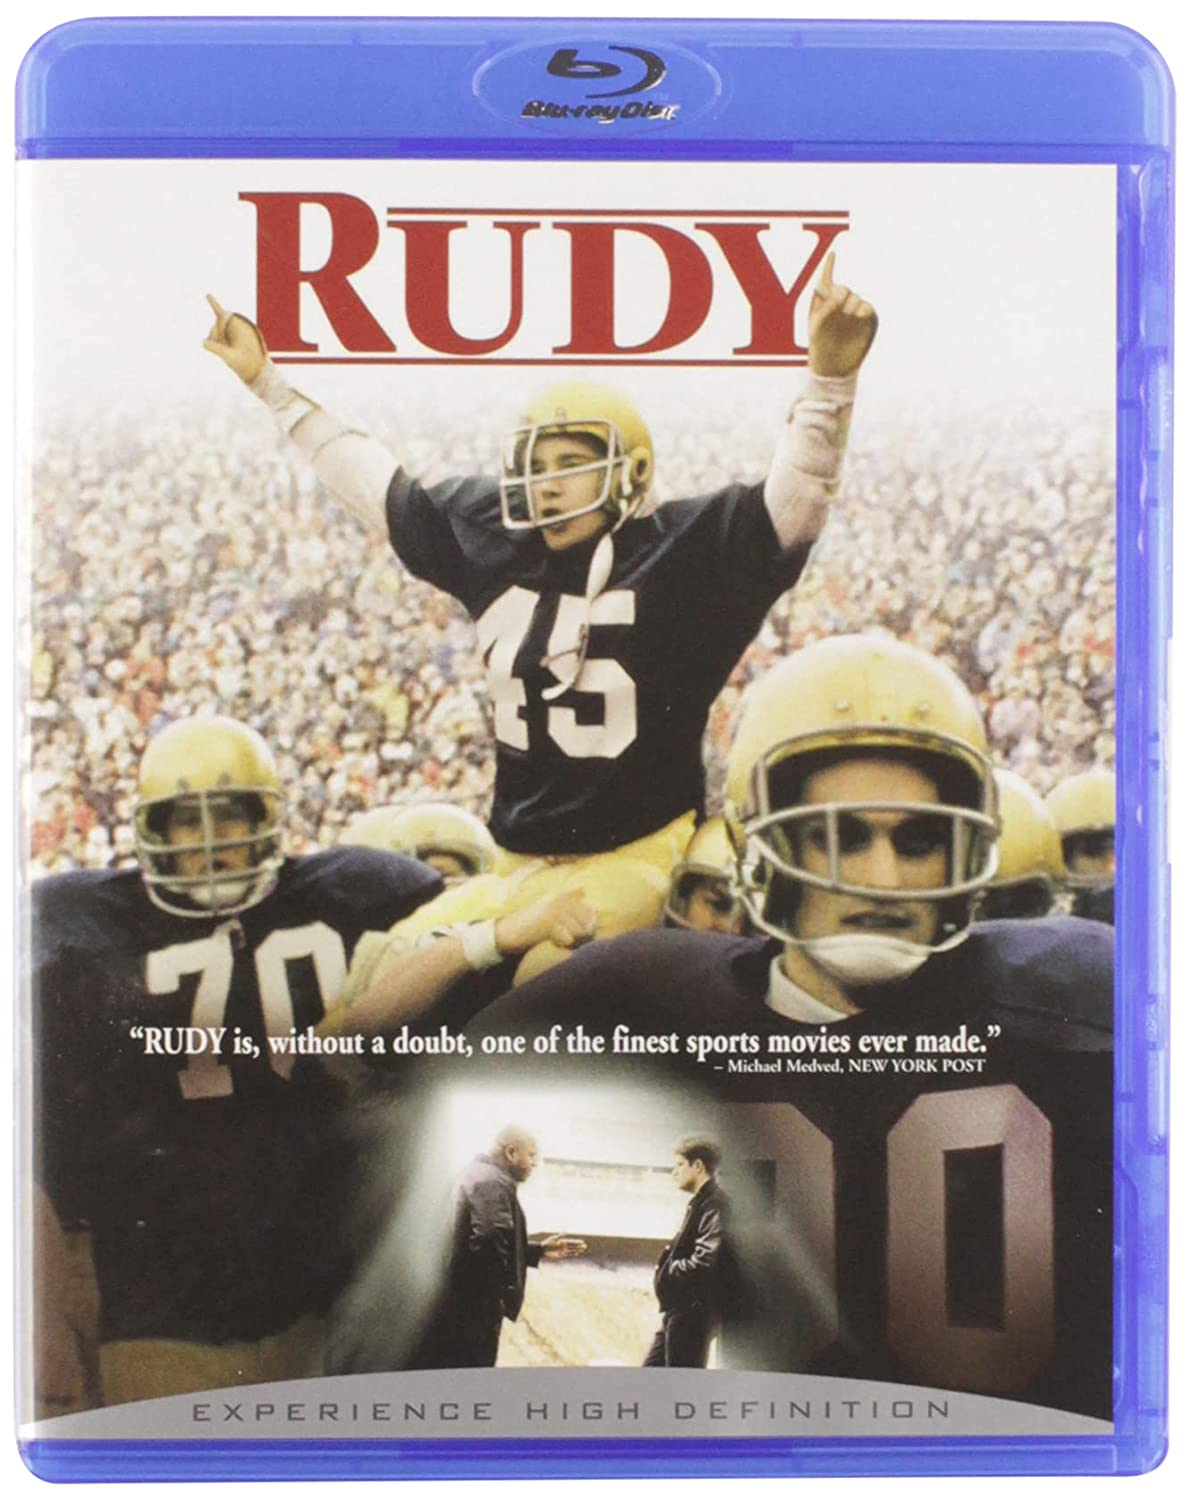 Rudy Direct sale of manufacturer Max 68% OFF + BD Blu-ray Live